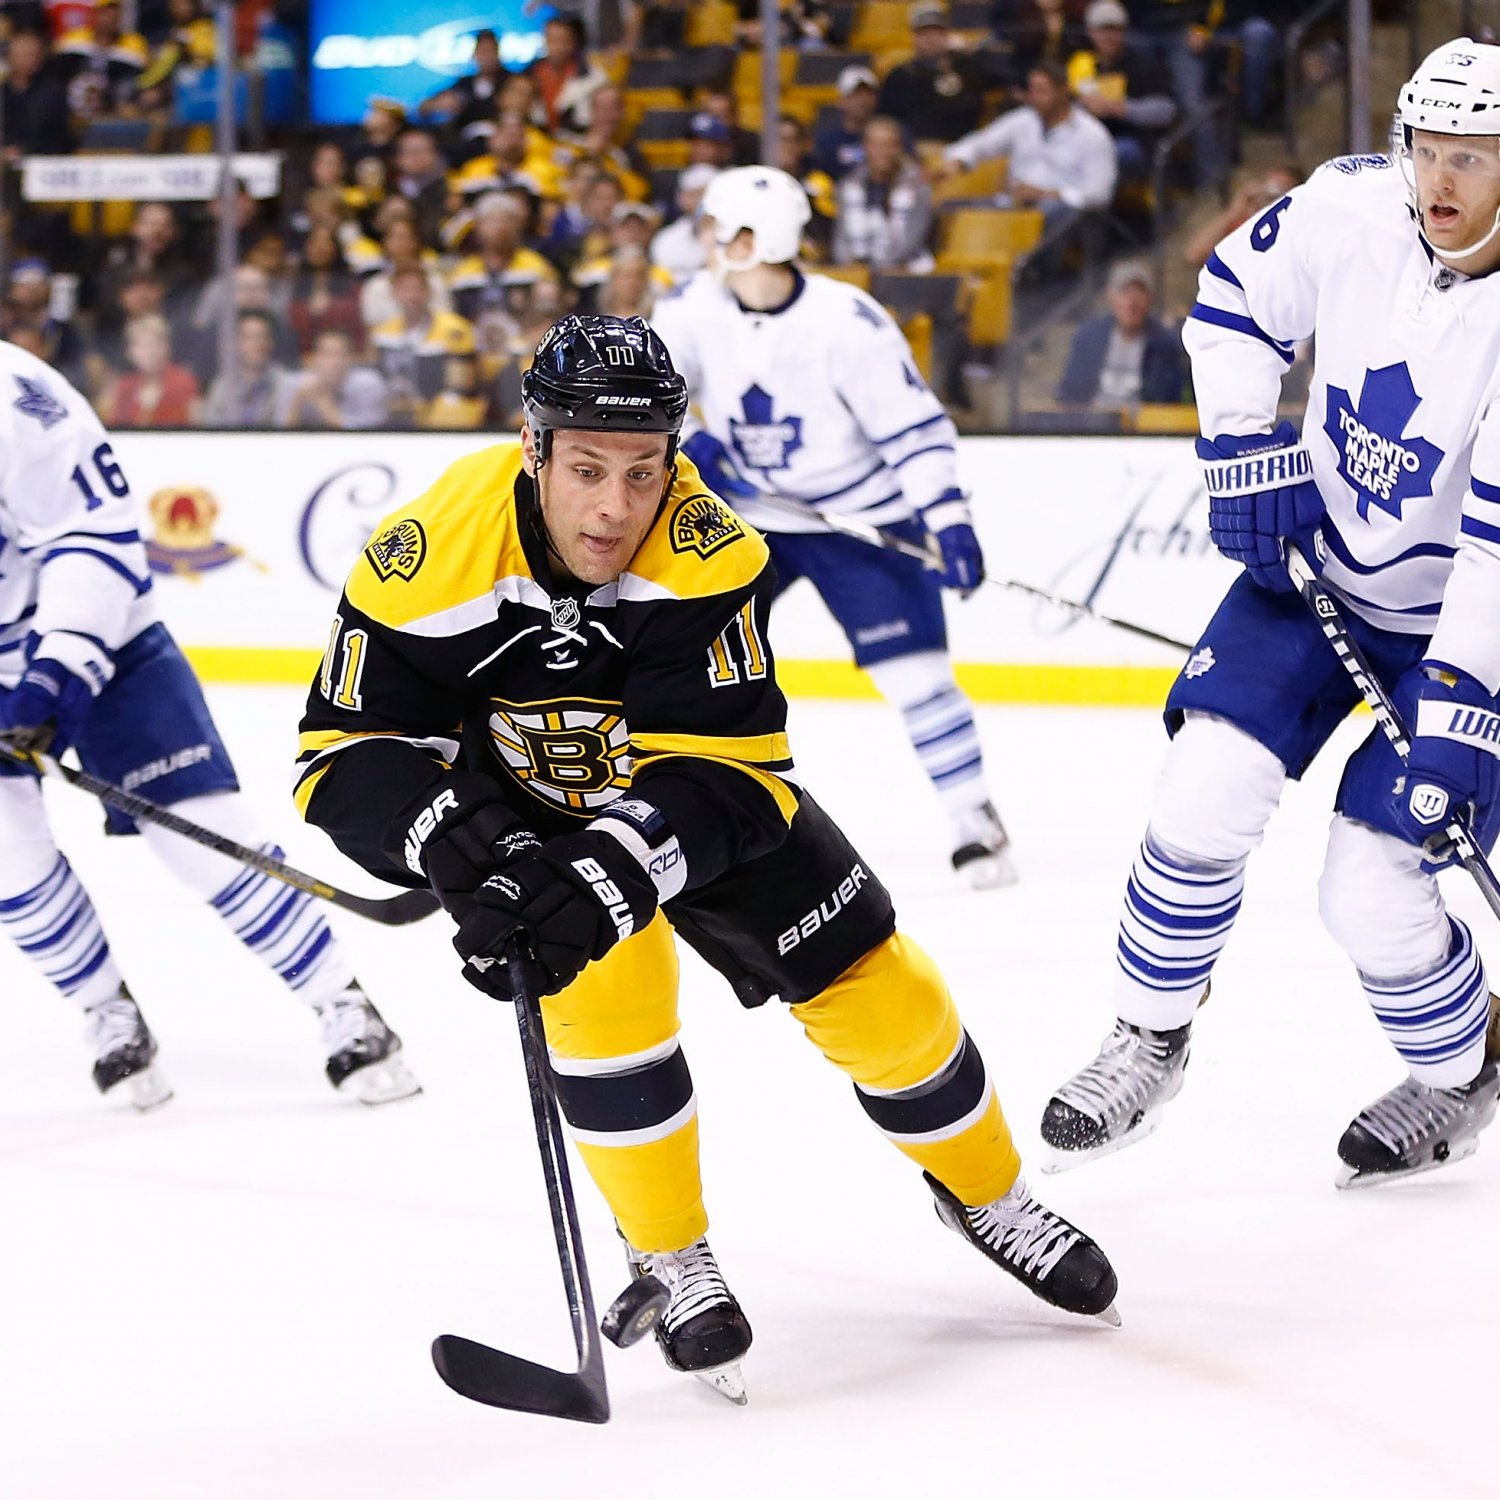 Maple Leafs Vs. Bruins: Instant Analysis, Updates And